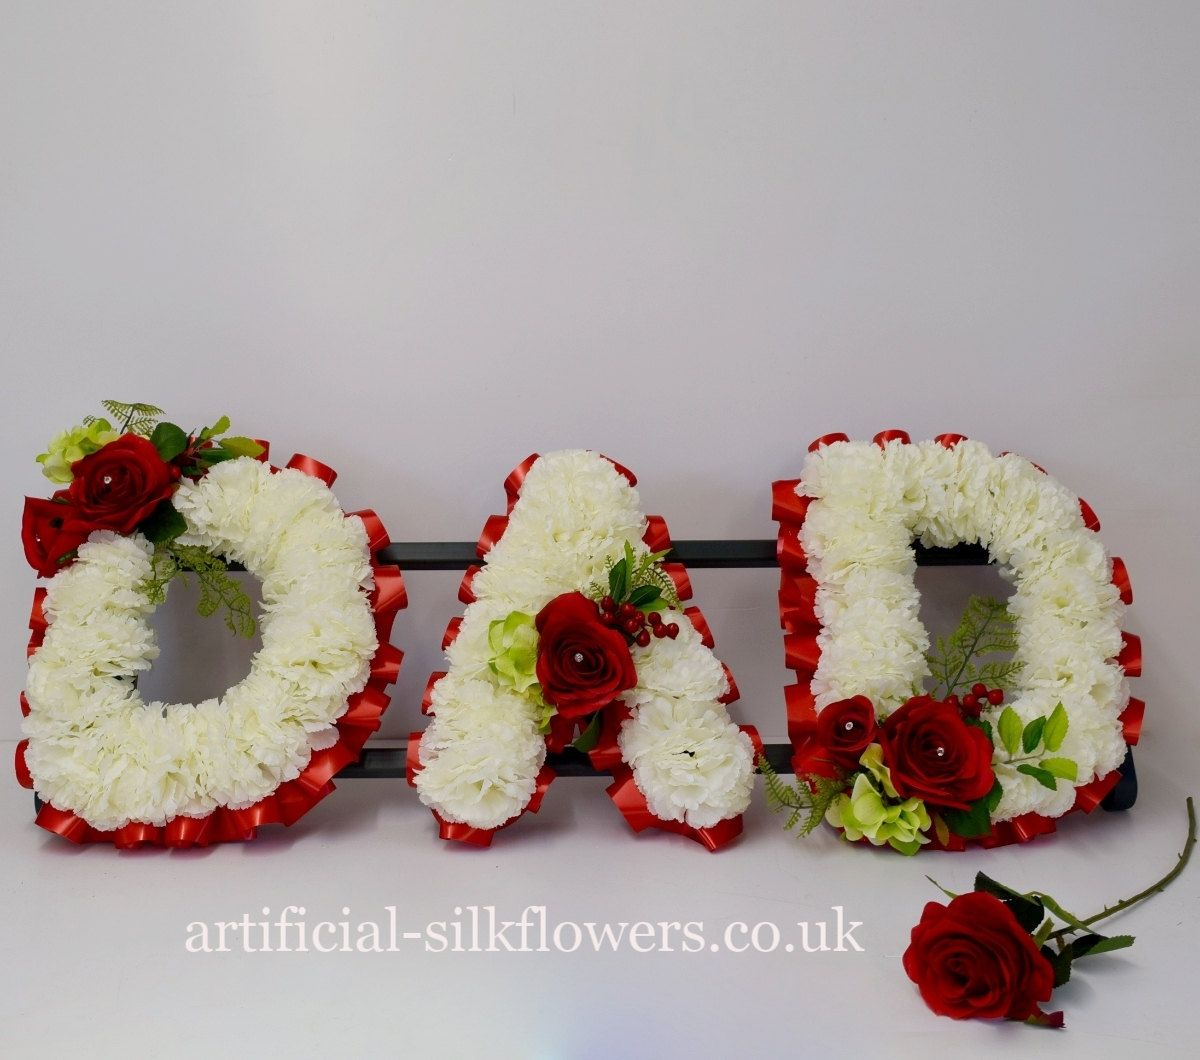 Artificial funeral flowers dad tribute with single rose included by artificial funeral flowers dad tribute with single rose included by artificialdesign on etsy izmirmasajfo